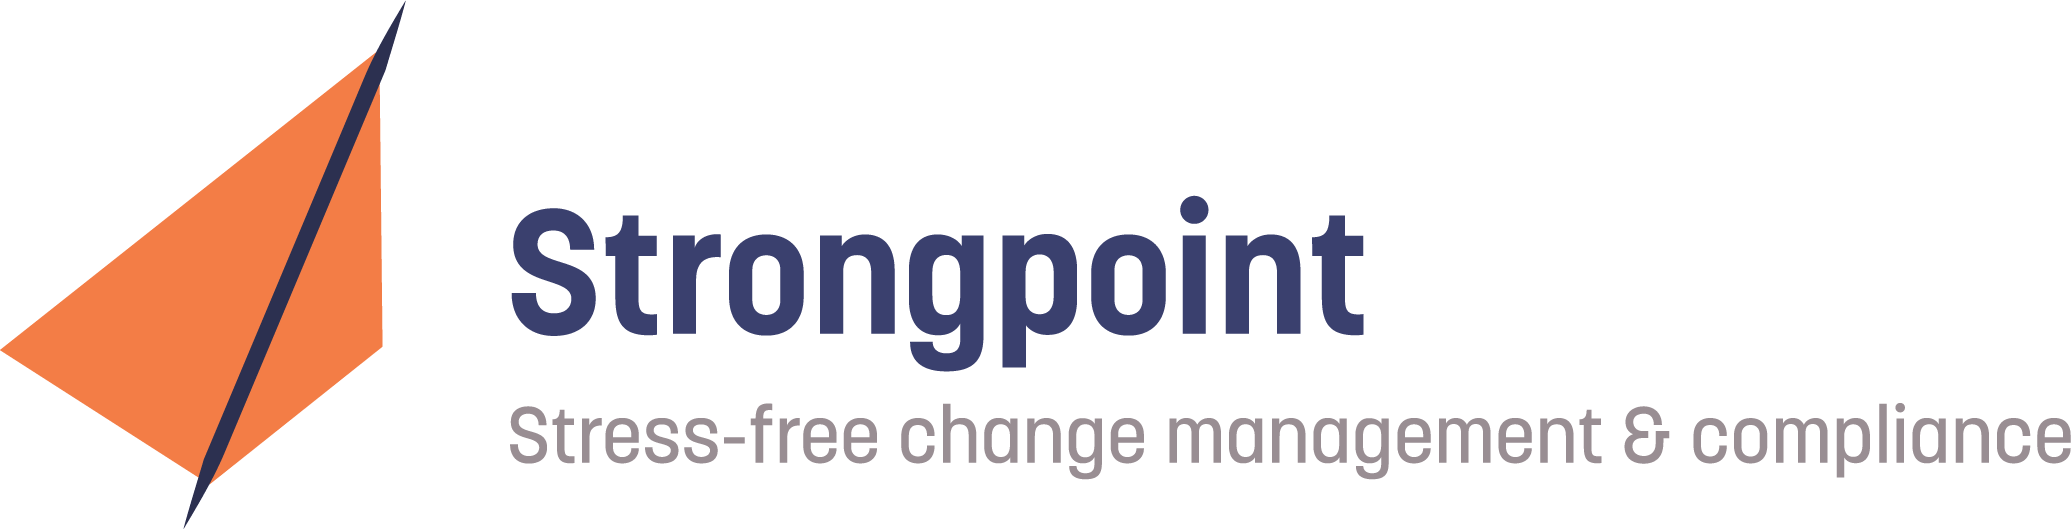 Strongpoint logo